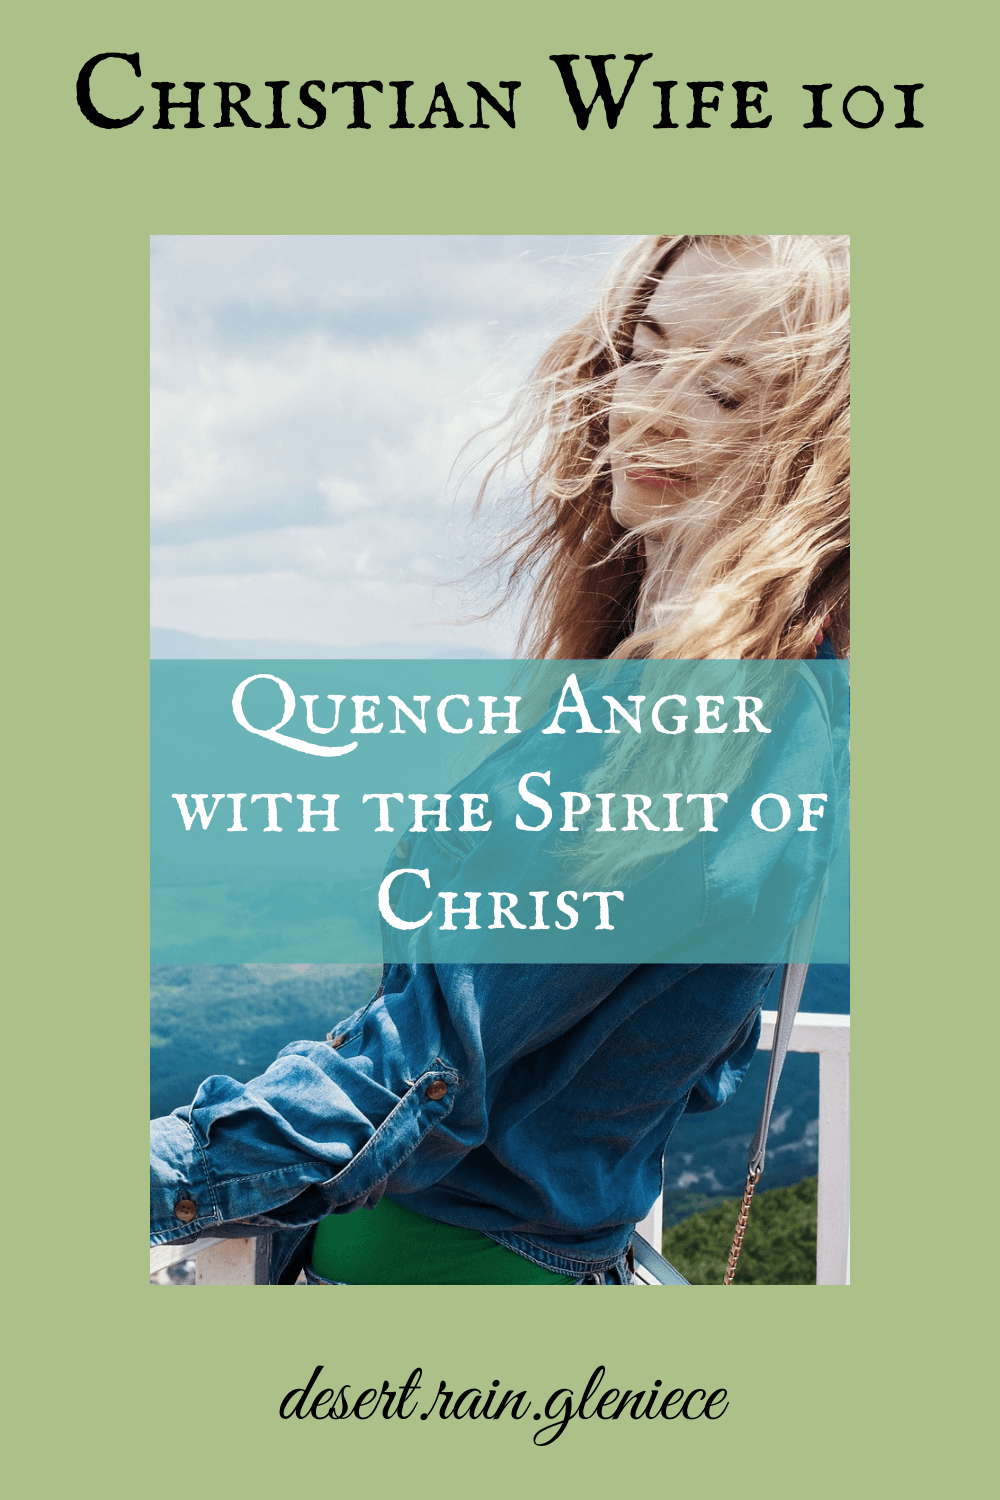 What causes tension in marriage and anger to flare? The fiery spirit of the accuser. But yielding to the Spirit of Christ will quench your anger and set you free. #christianwife101, #godlymarriage, #anger, #Christ